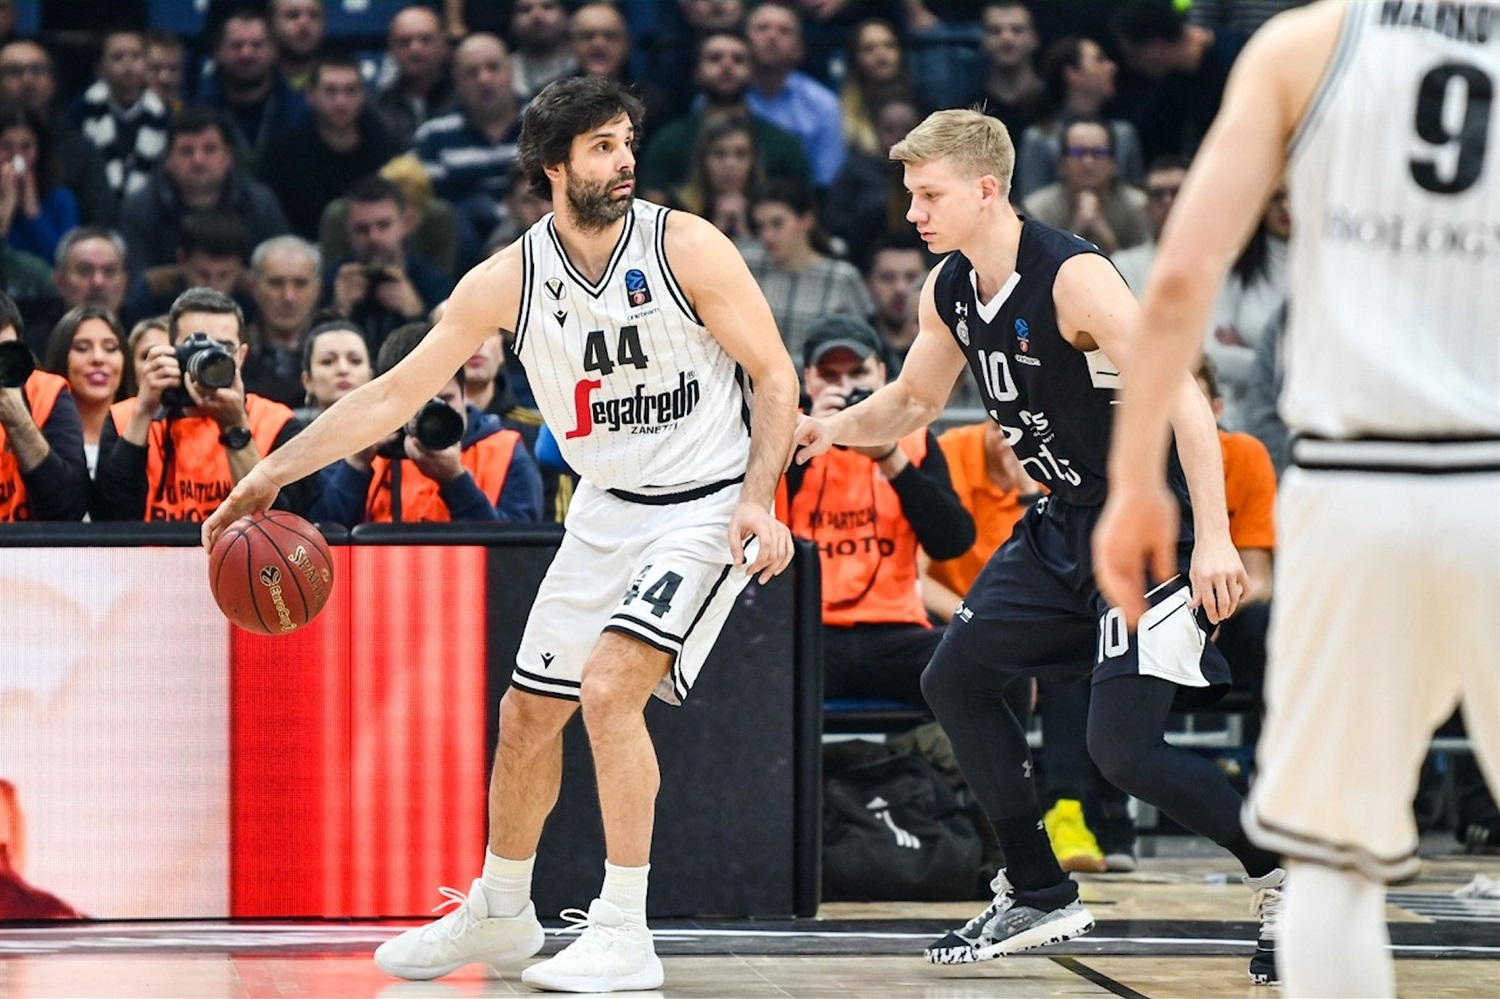 Milos Teodosic - Segafredo Virtus Bologna (photo Dragana Stjepanovic) - EC19